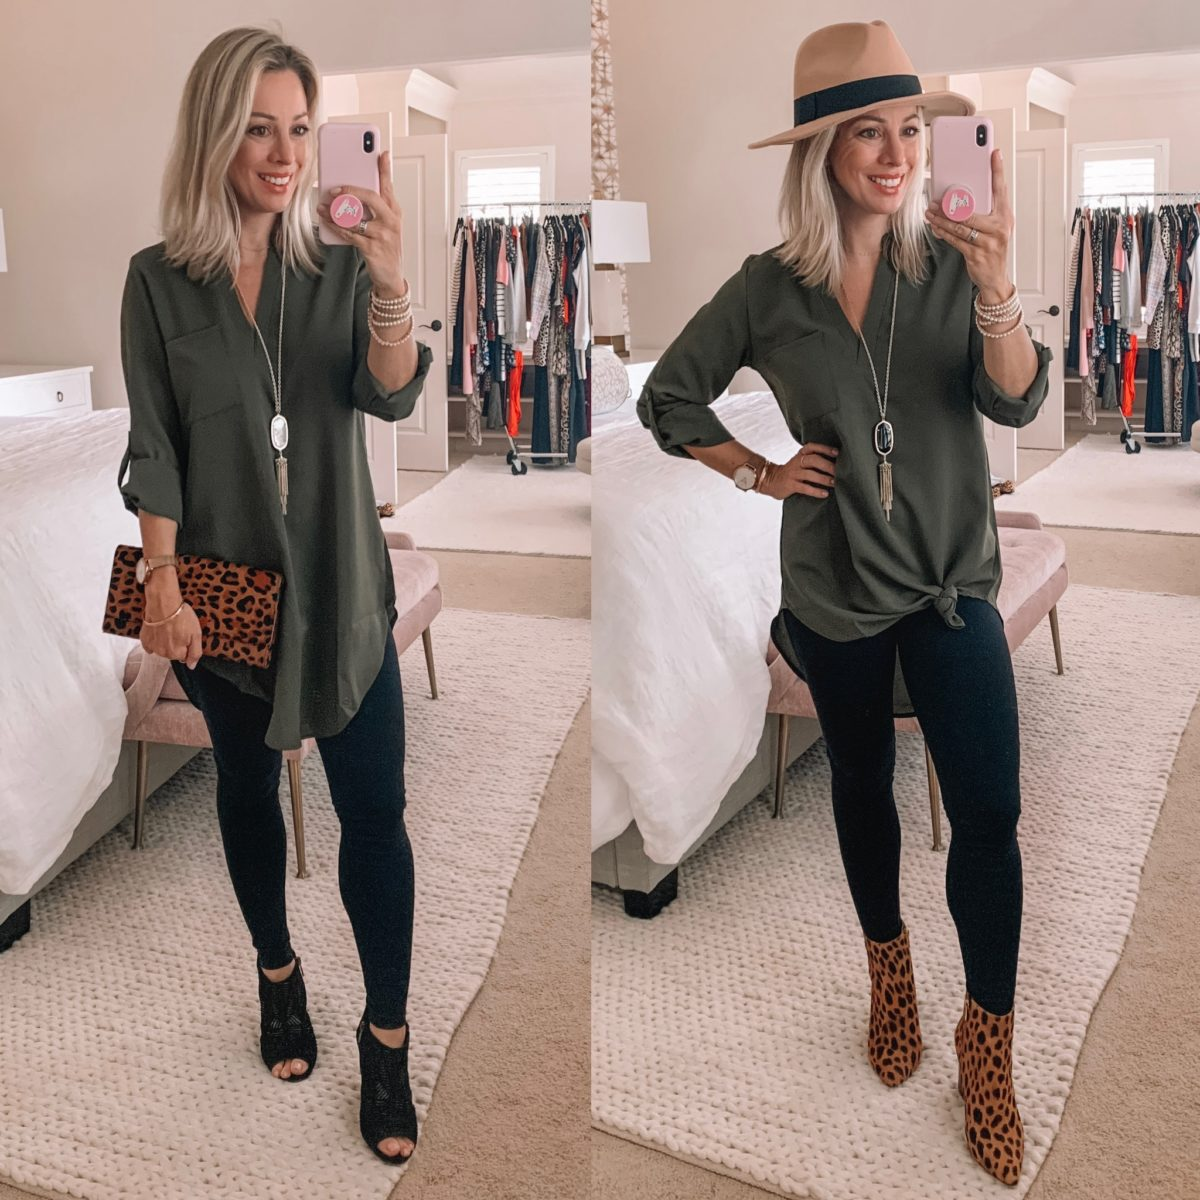 Amazon Fashion Faves, Gree Tunic Top, Leggings, Booties, Leopard Clutch